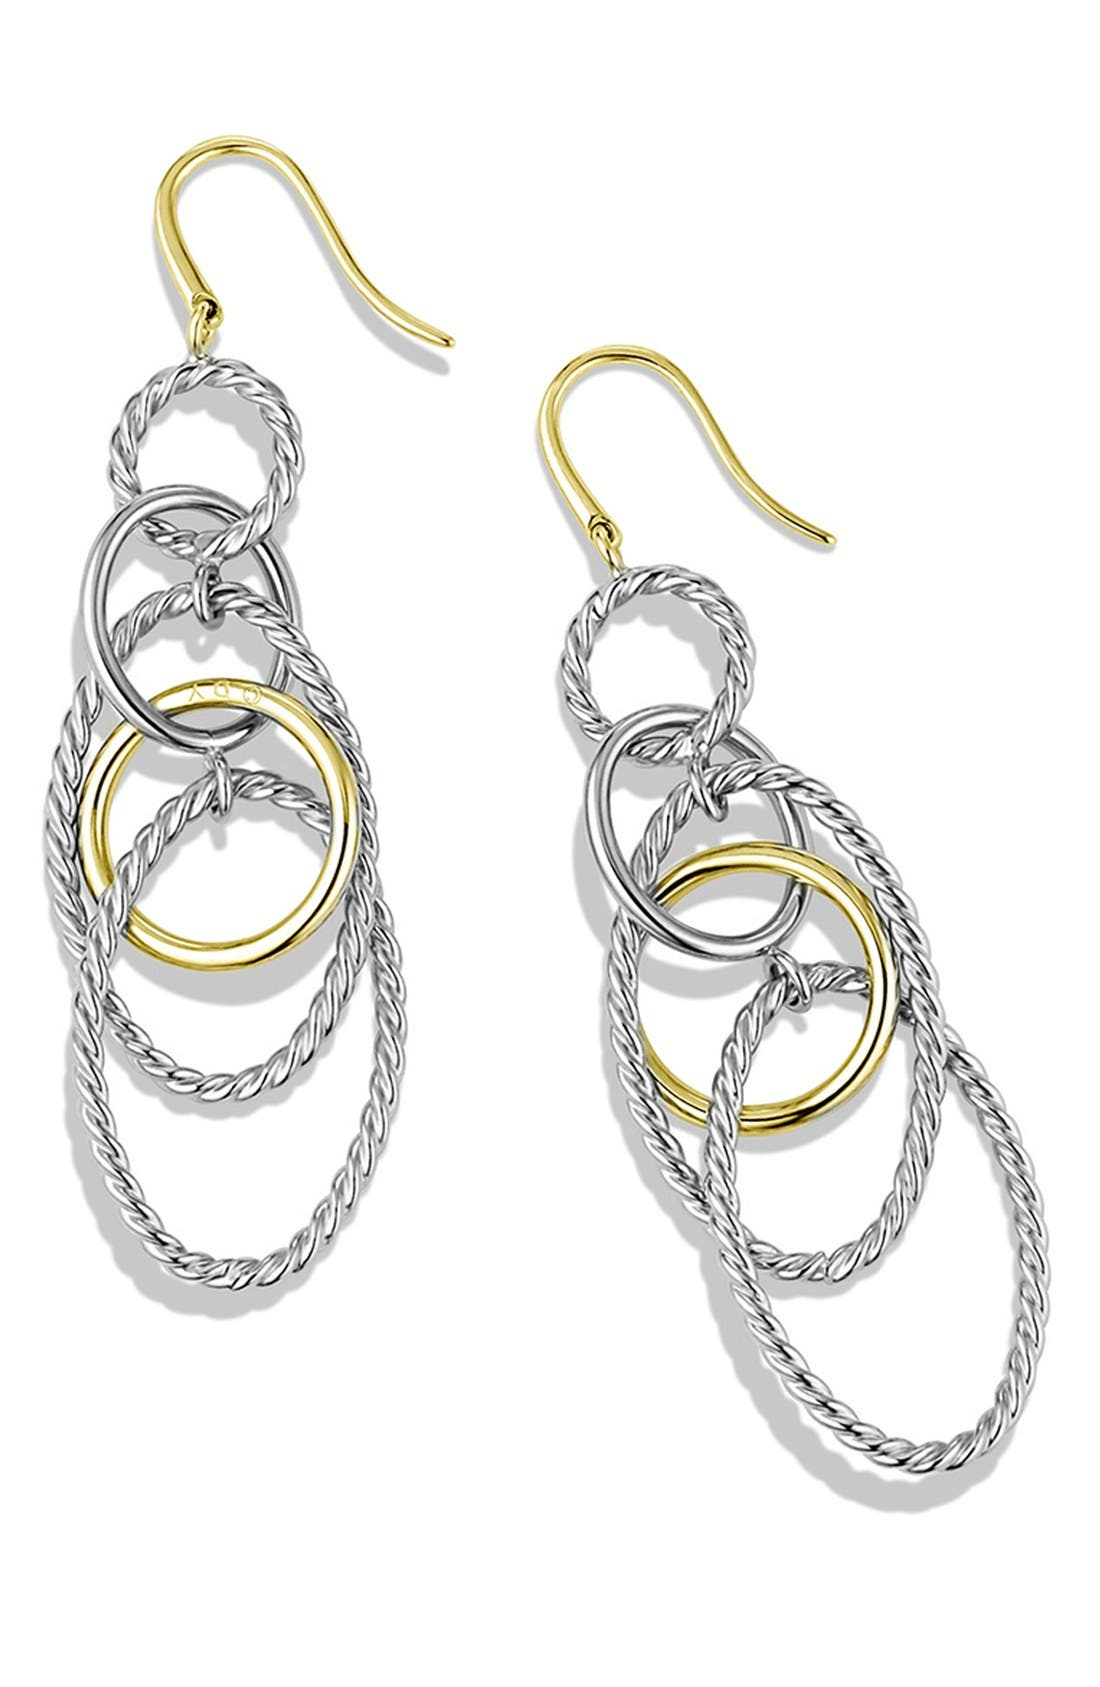 'Mobile' Large Link Earrings with Gold,                             Alternate thumbnail 2, color,                             Two Tone